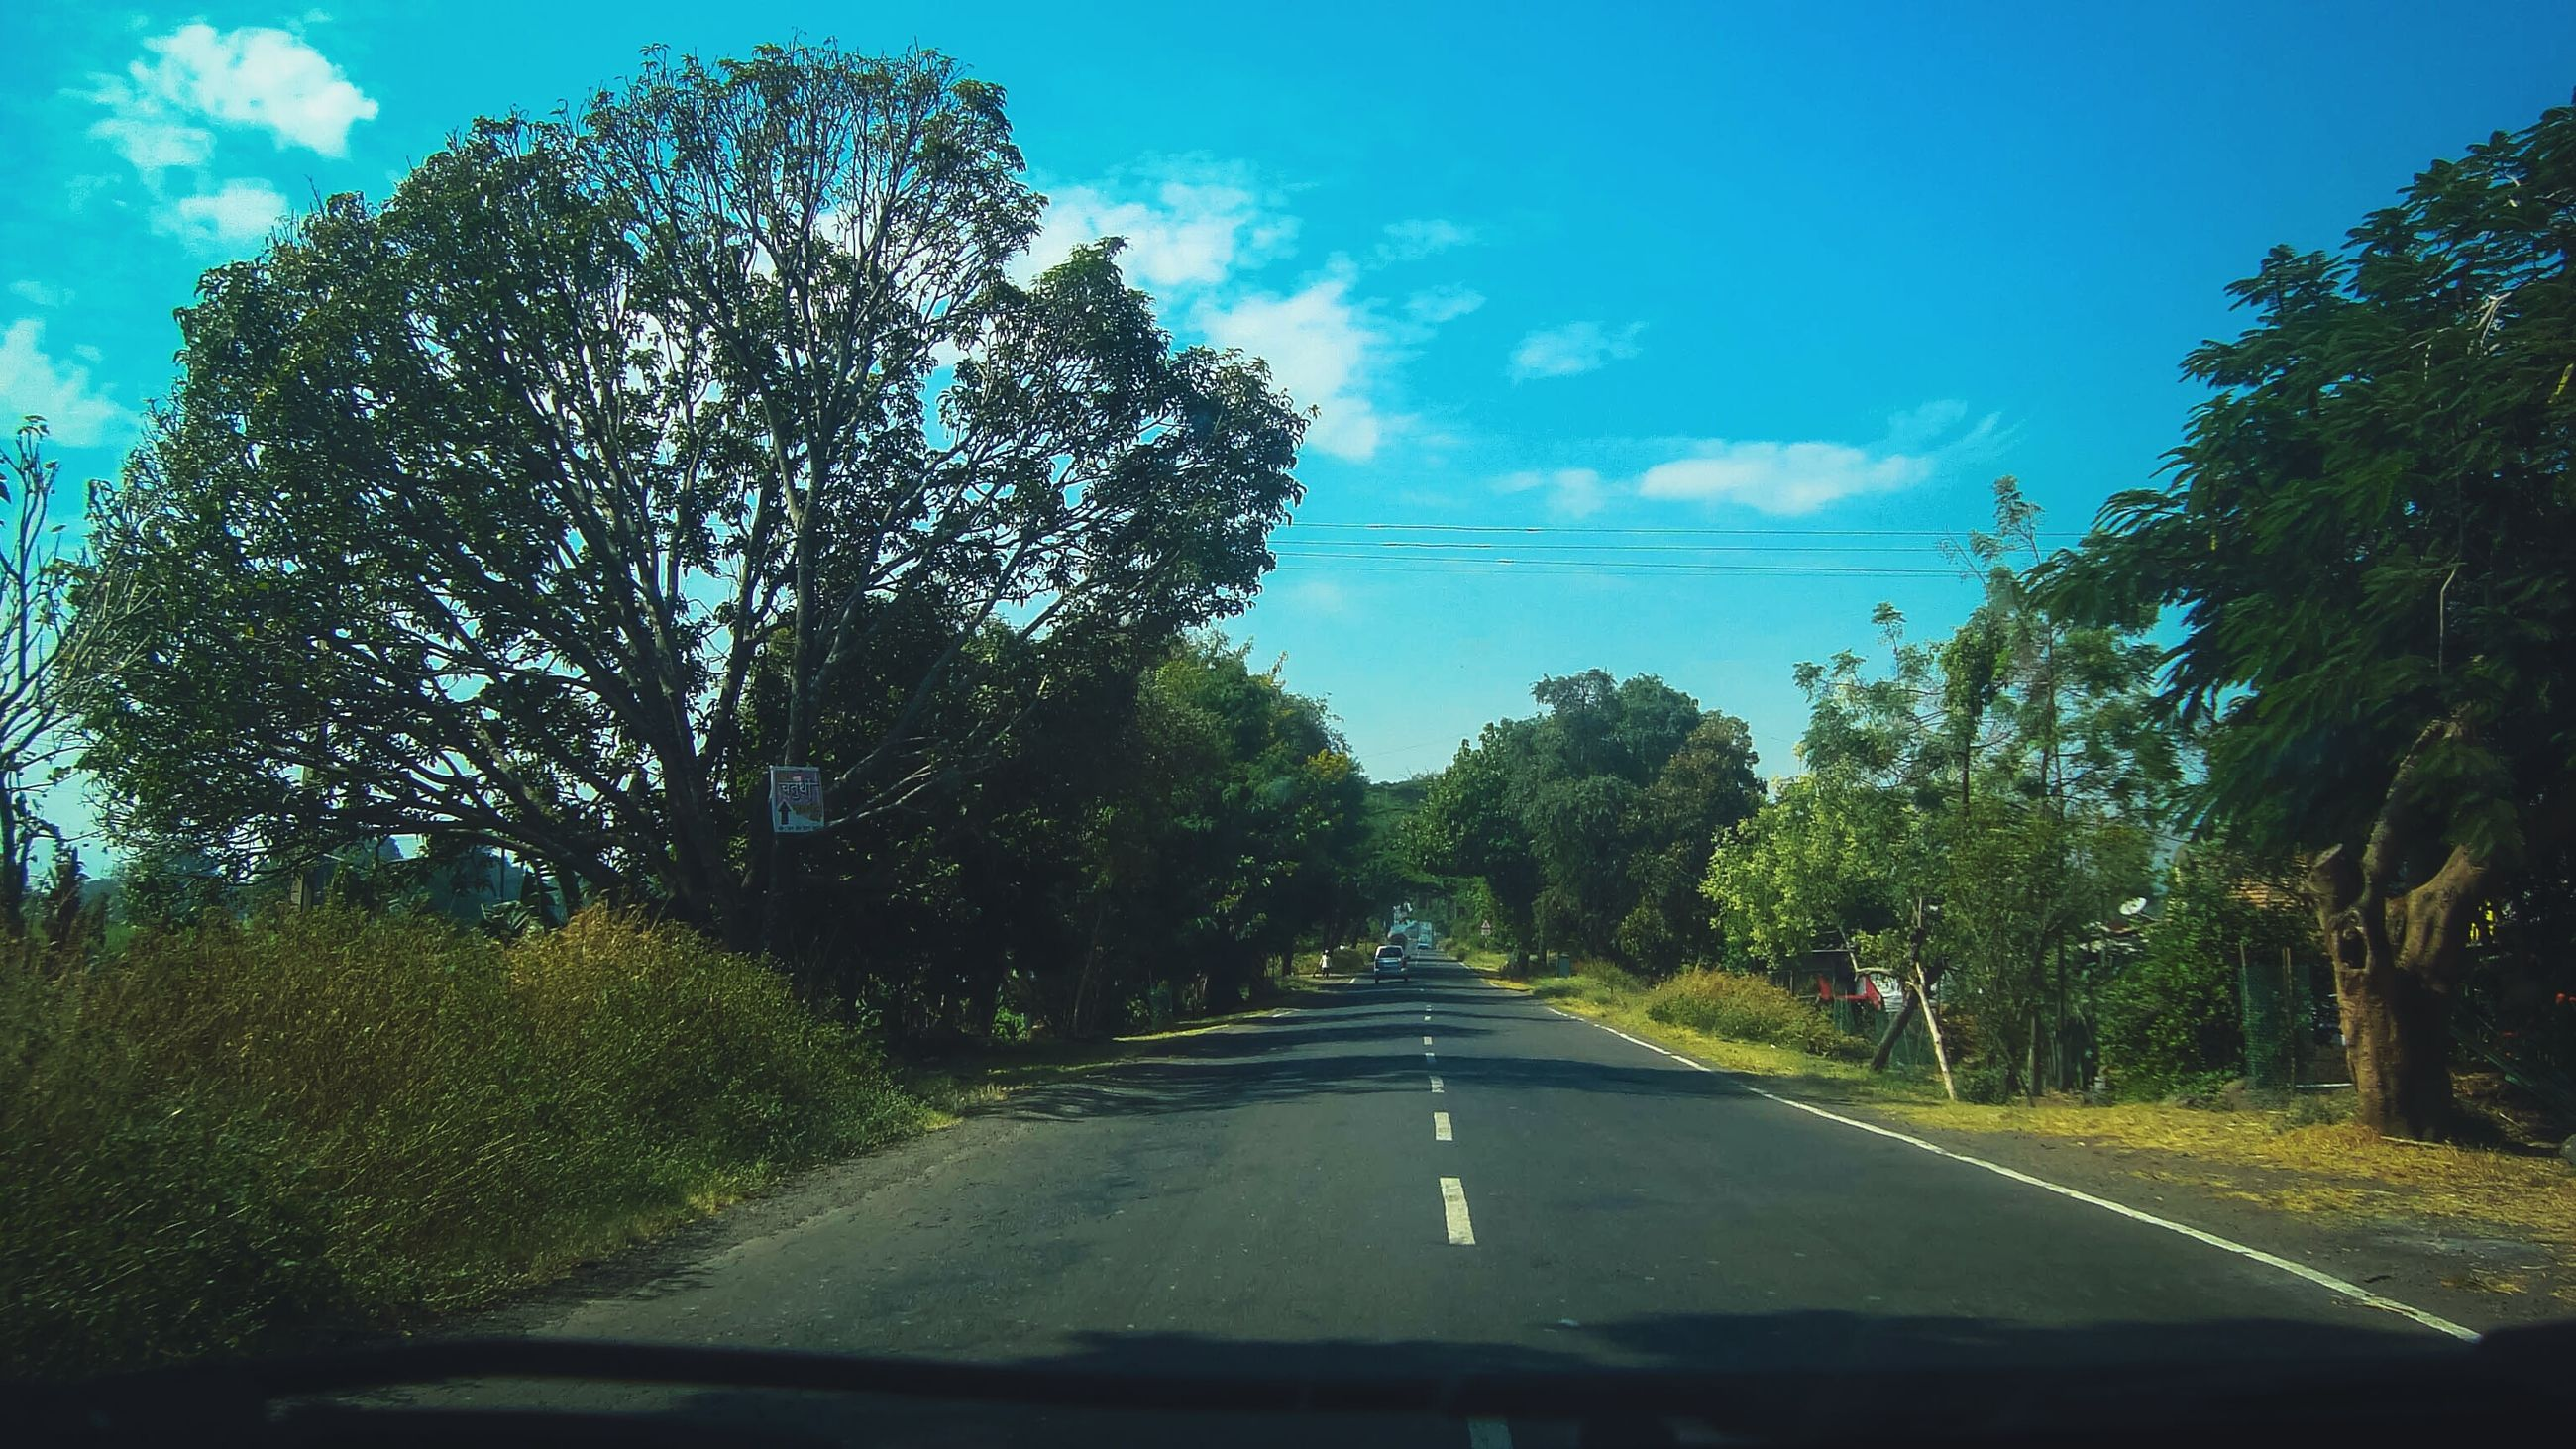 tree, car, transportation, sky, windshield, land vehicle, car interior, transparent, nature, the way forward, road, mode of transport, vehicle interior, car point of view, day, no people, growth, beauty in nature, cloud - sky, scenics, outdoors, windscreen, water